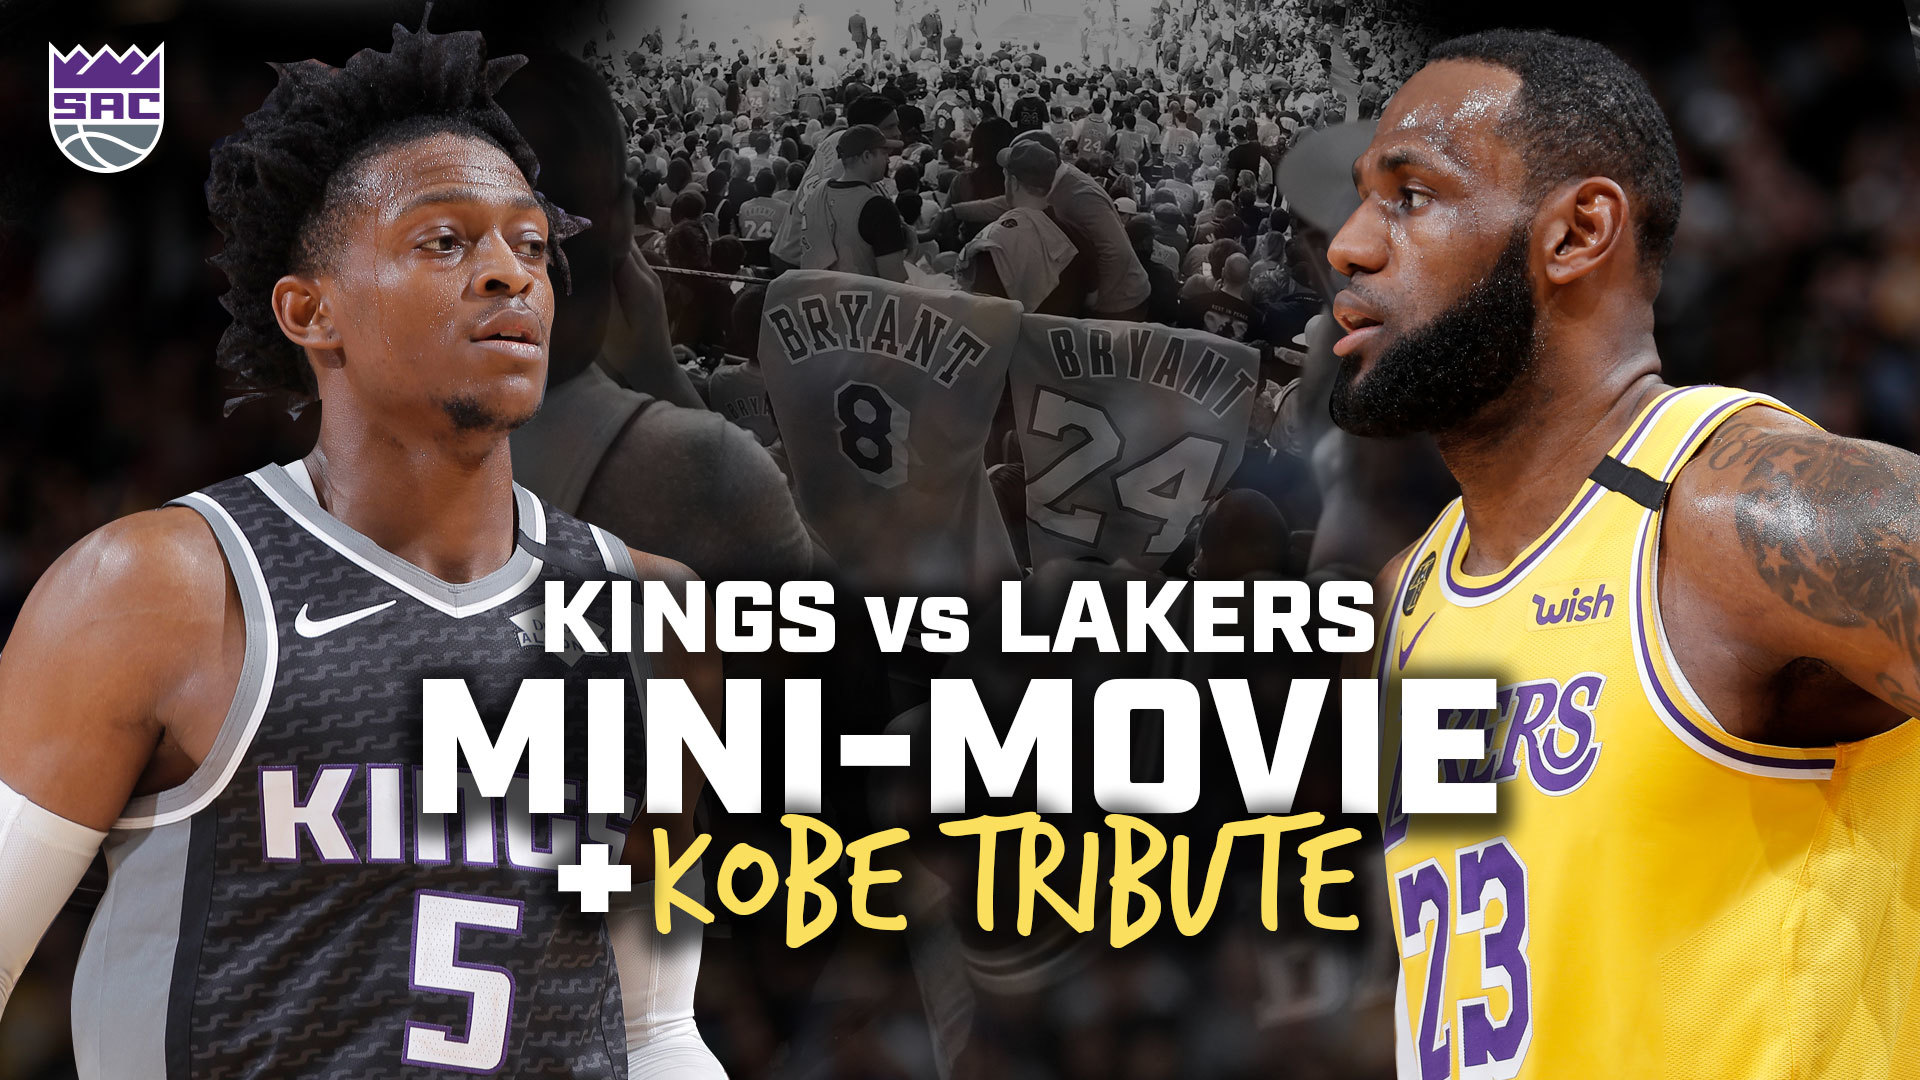 Kings vs Lakers Mini-Movie 2.1.20